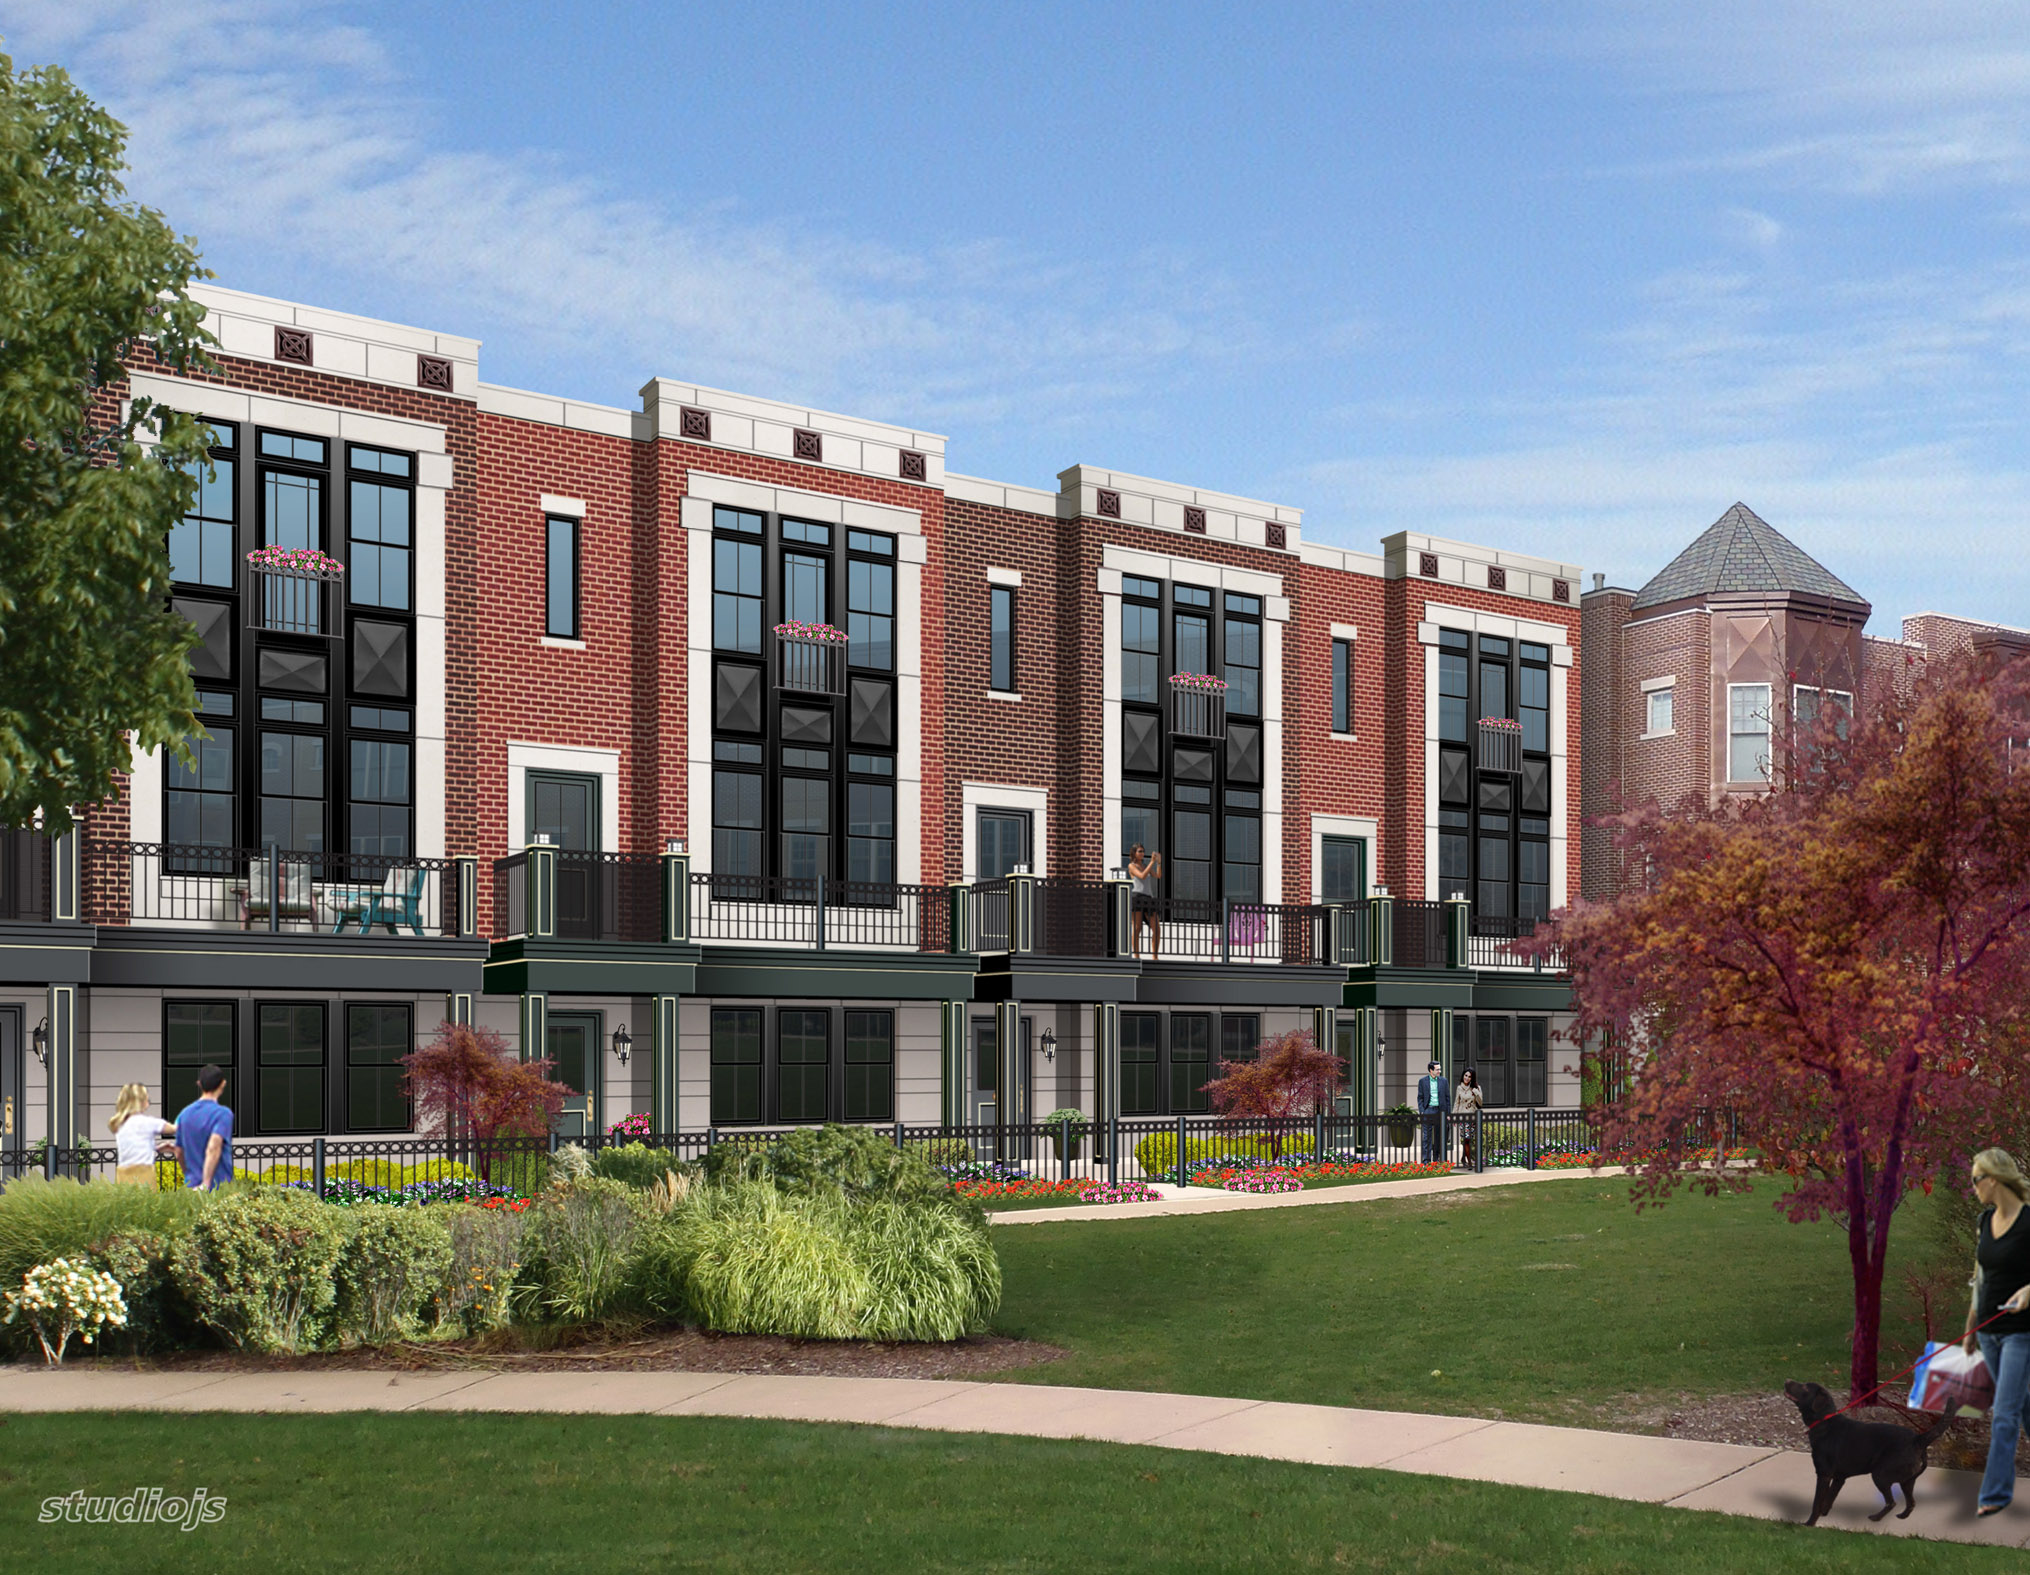 New Townhomes Planned For Avondale Site Yochicago